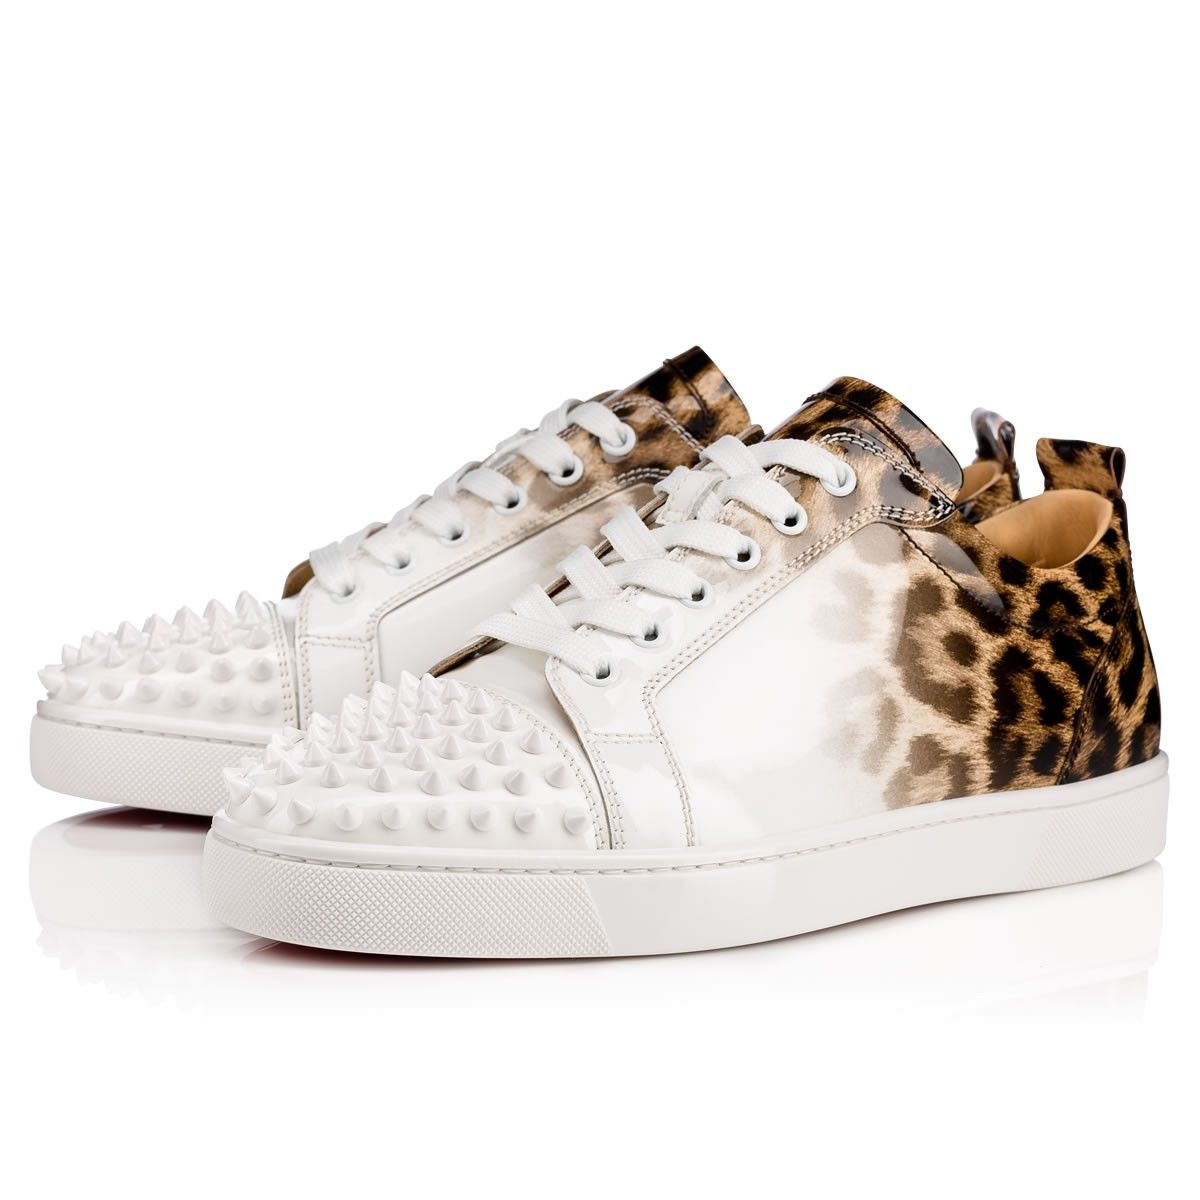 4f1689bf2025 Shoes - Louis Junior Spikes Men s Flat - Christian Louboutin